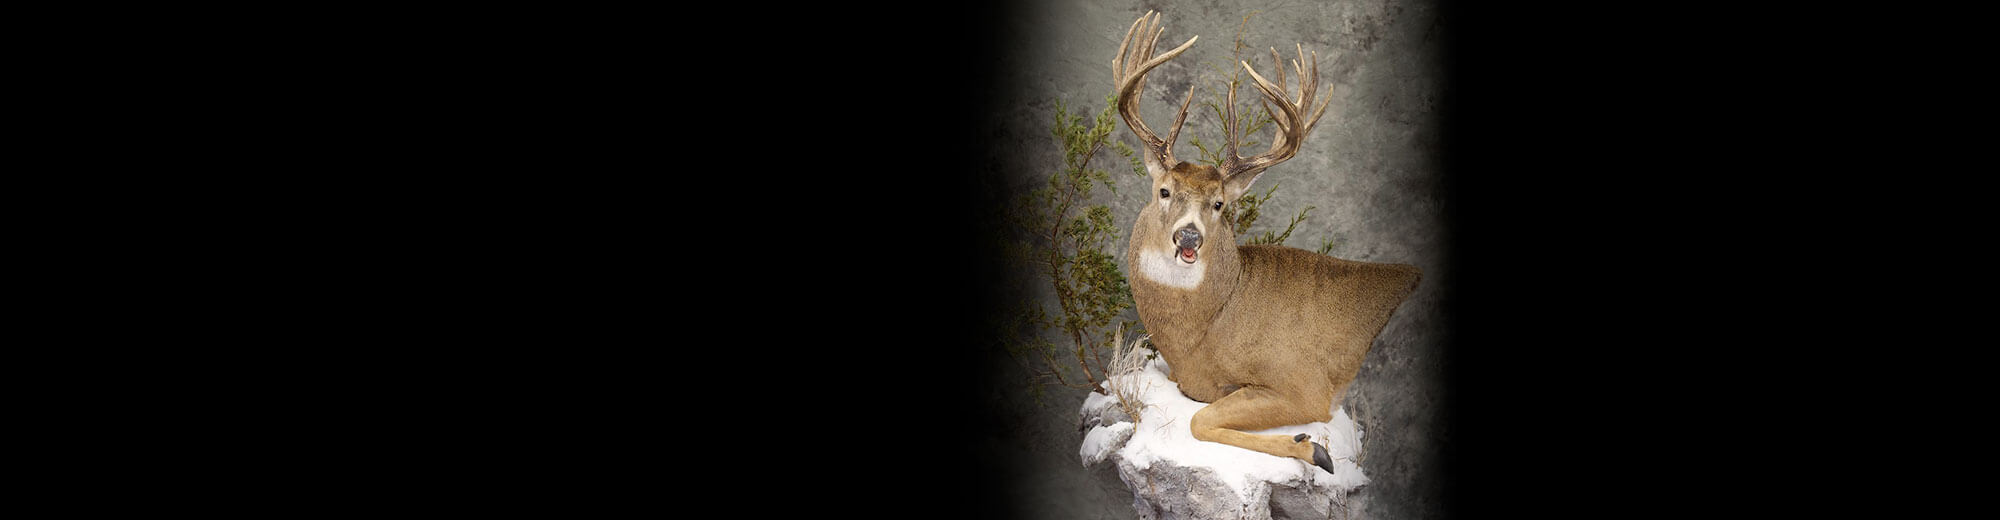 best in world whitetail mount 2019 Clint Rickey